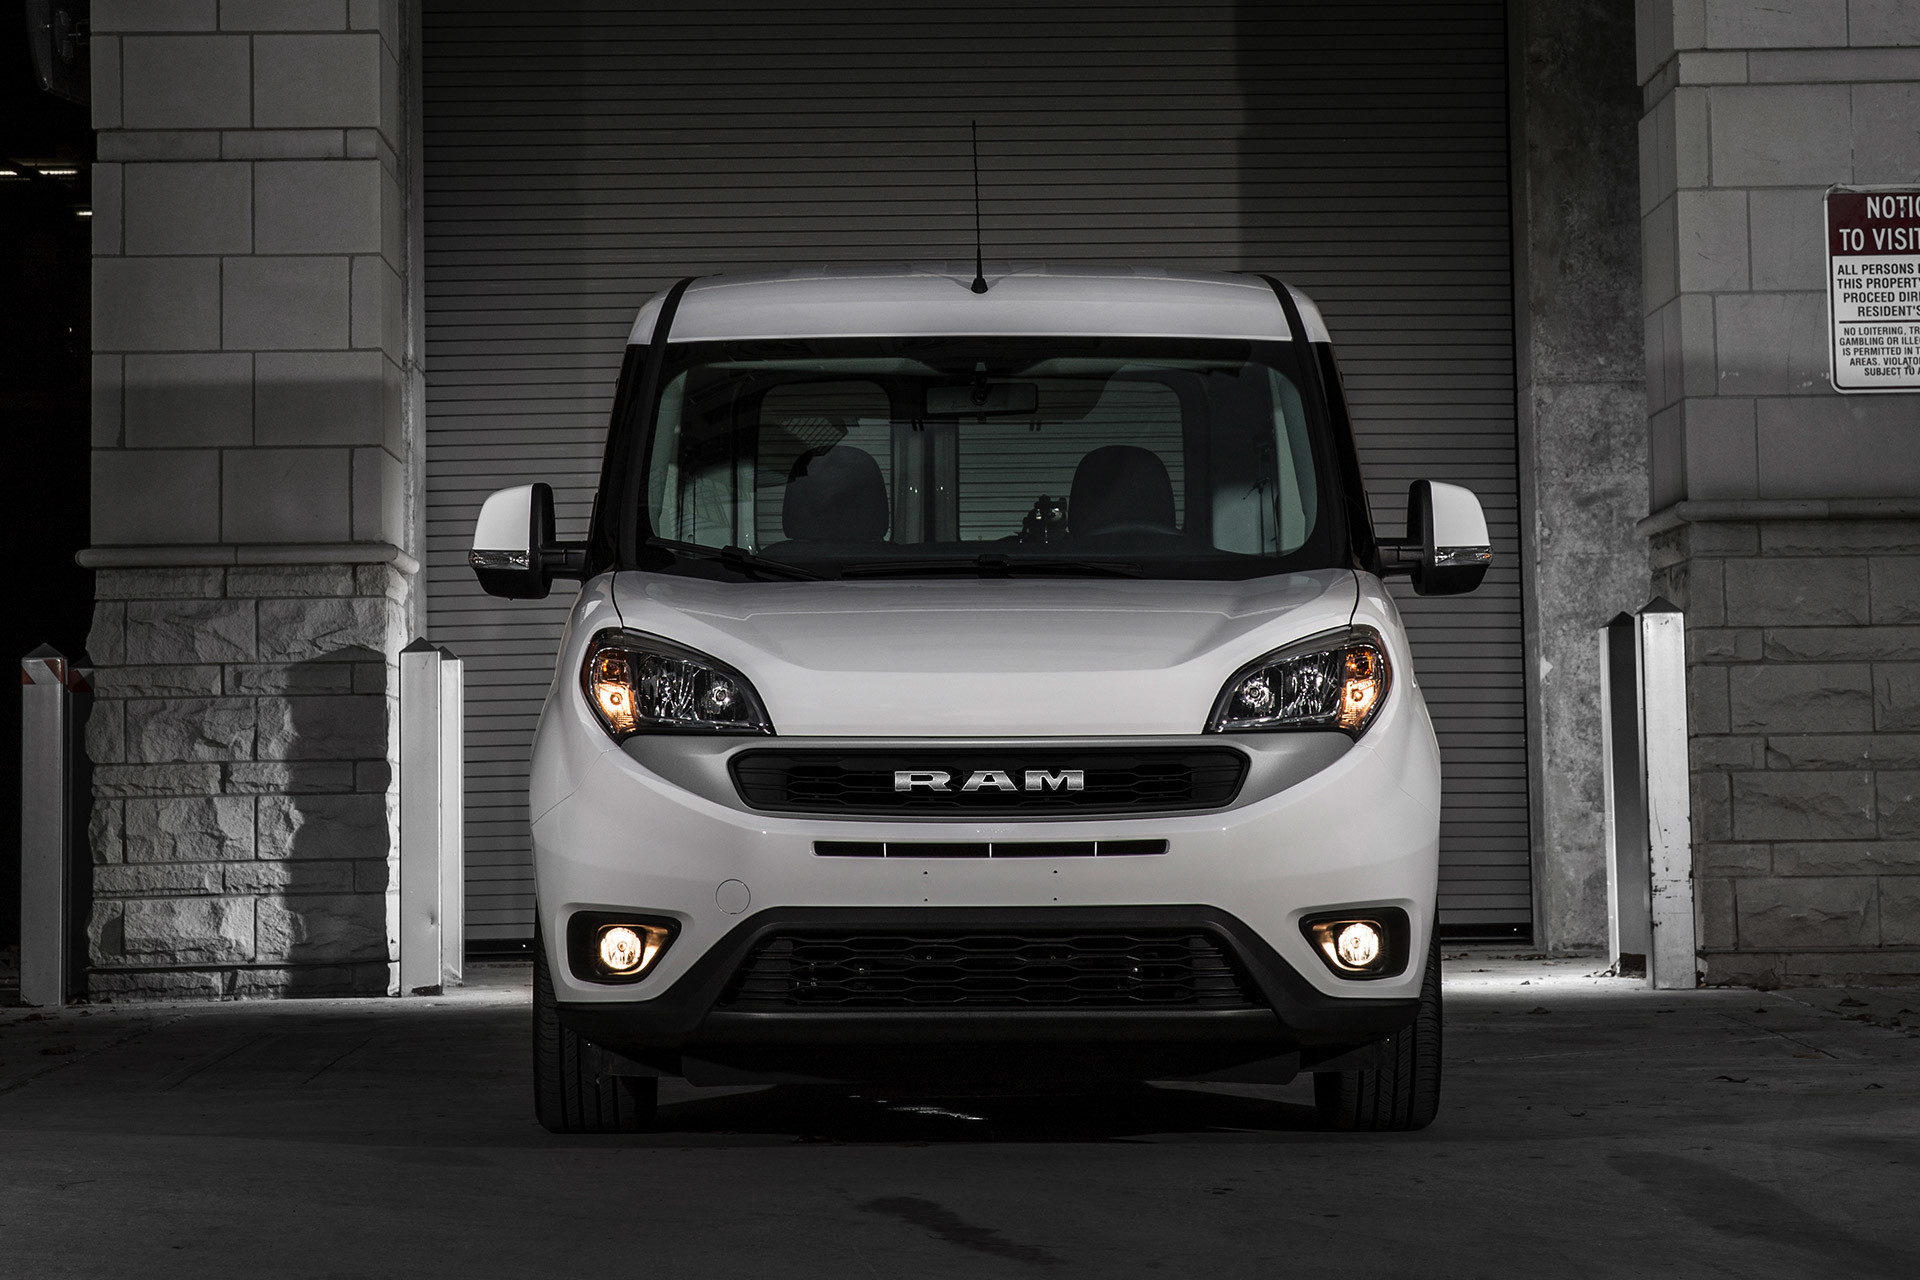 Front view of 2020 Ram ProMaster City parked in front of garage door in an urban area